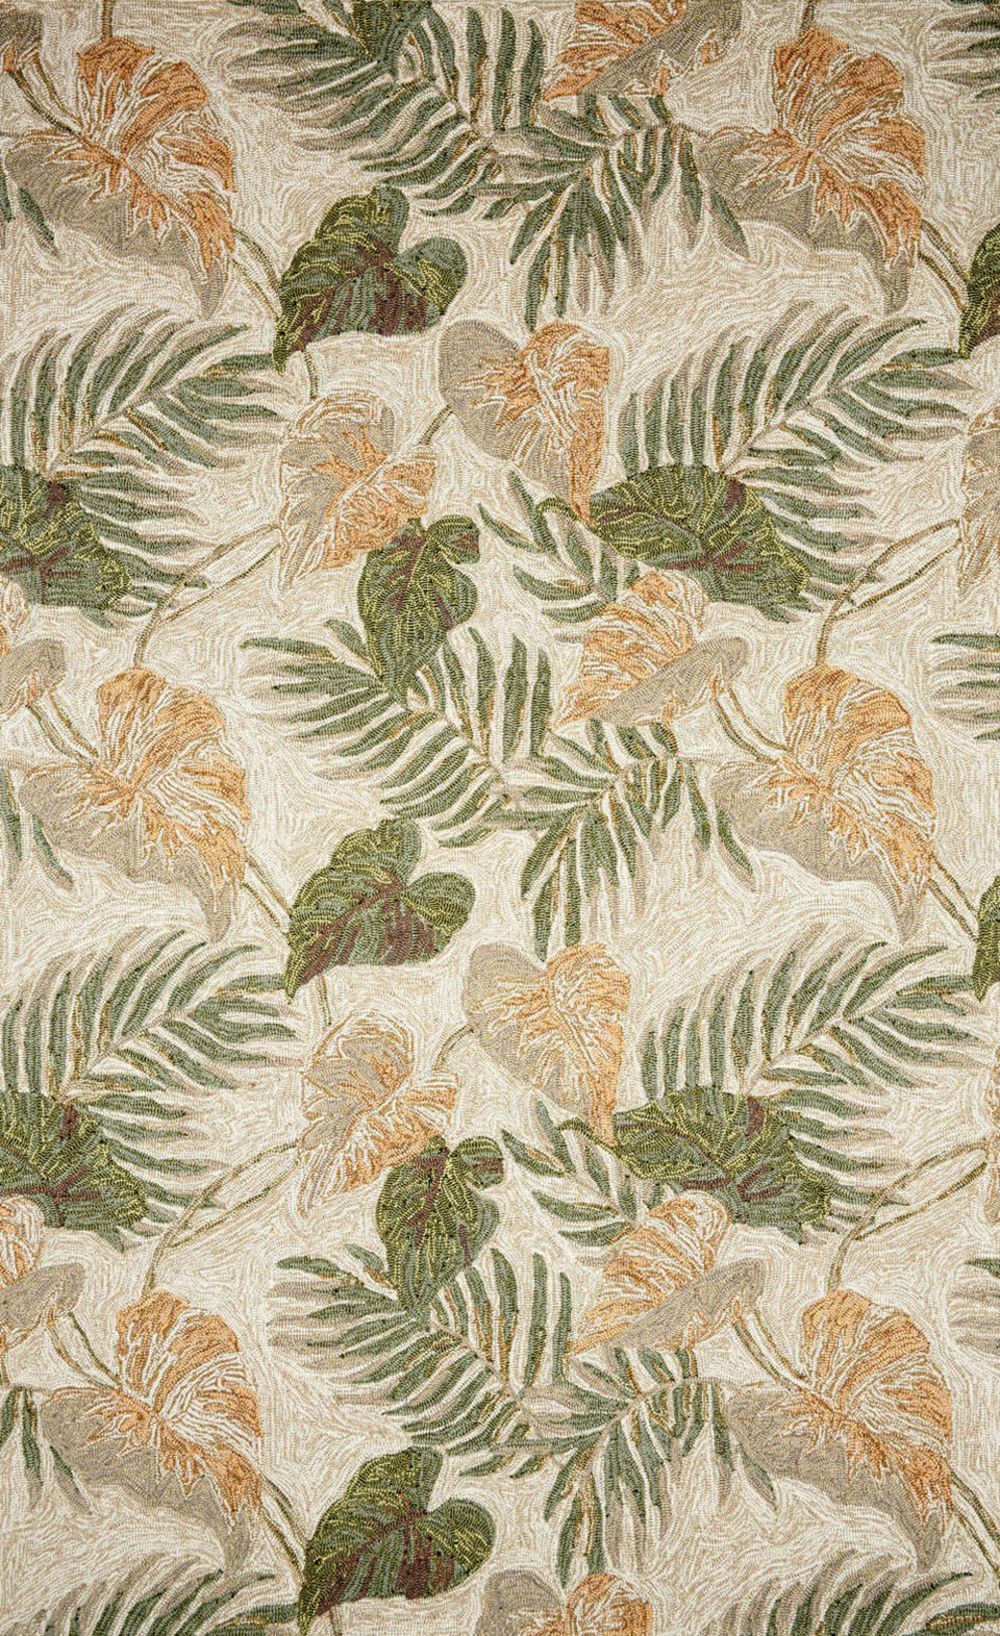 Trans-Ocean Import - Ravella Tropical Leaf Neutral Rug, 5'x8'